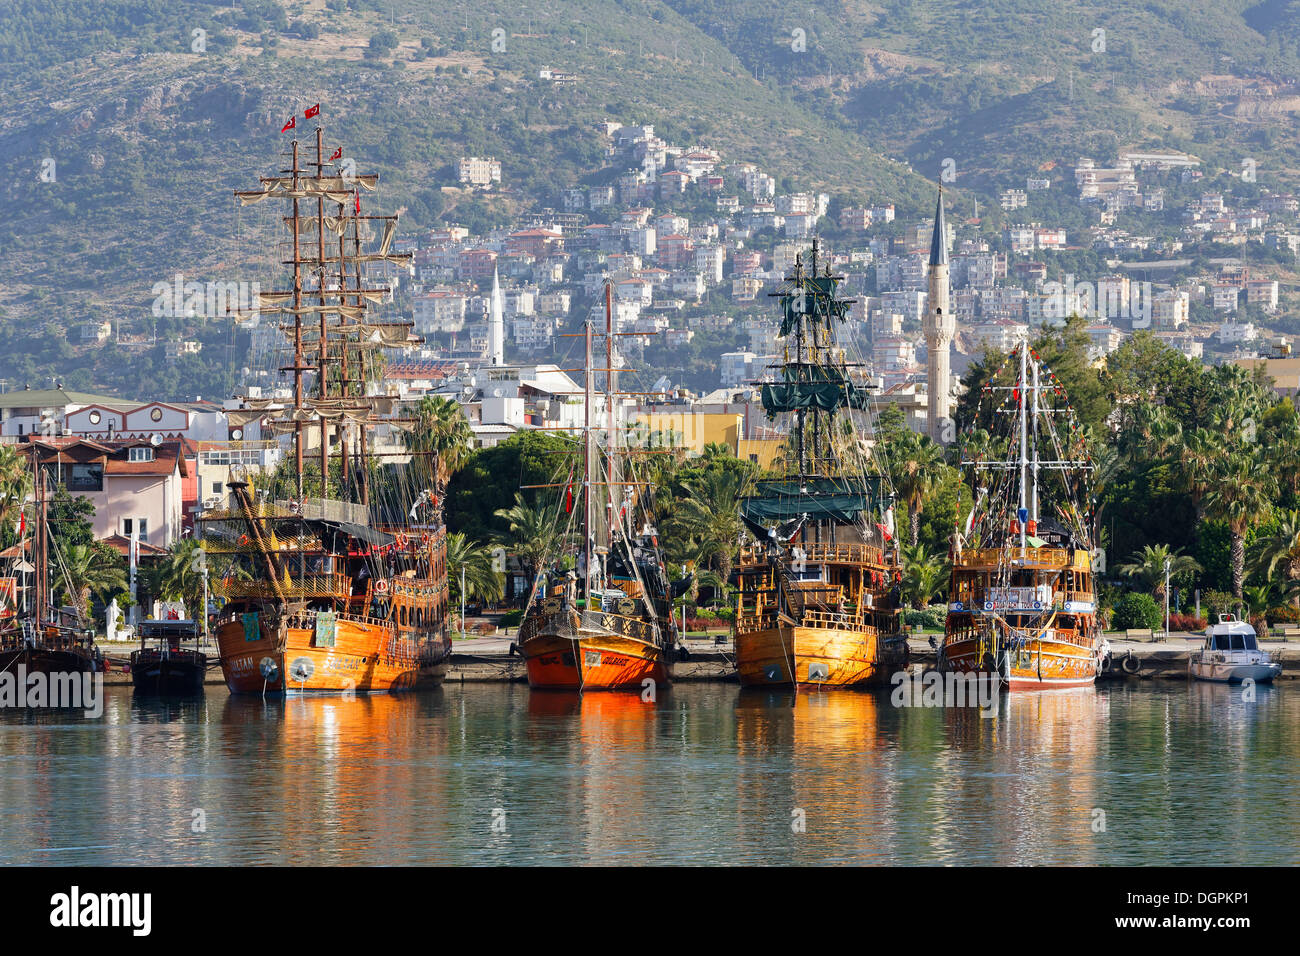 Excursion boats in the harbour, Alanya, Turkish Riviera, Province of Antalya, Mediterranean Region, Turkey - Stock Image